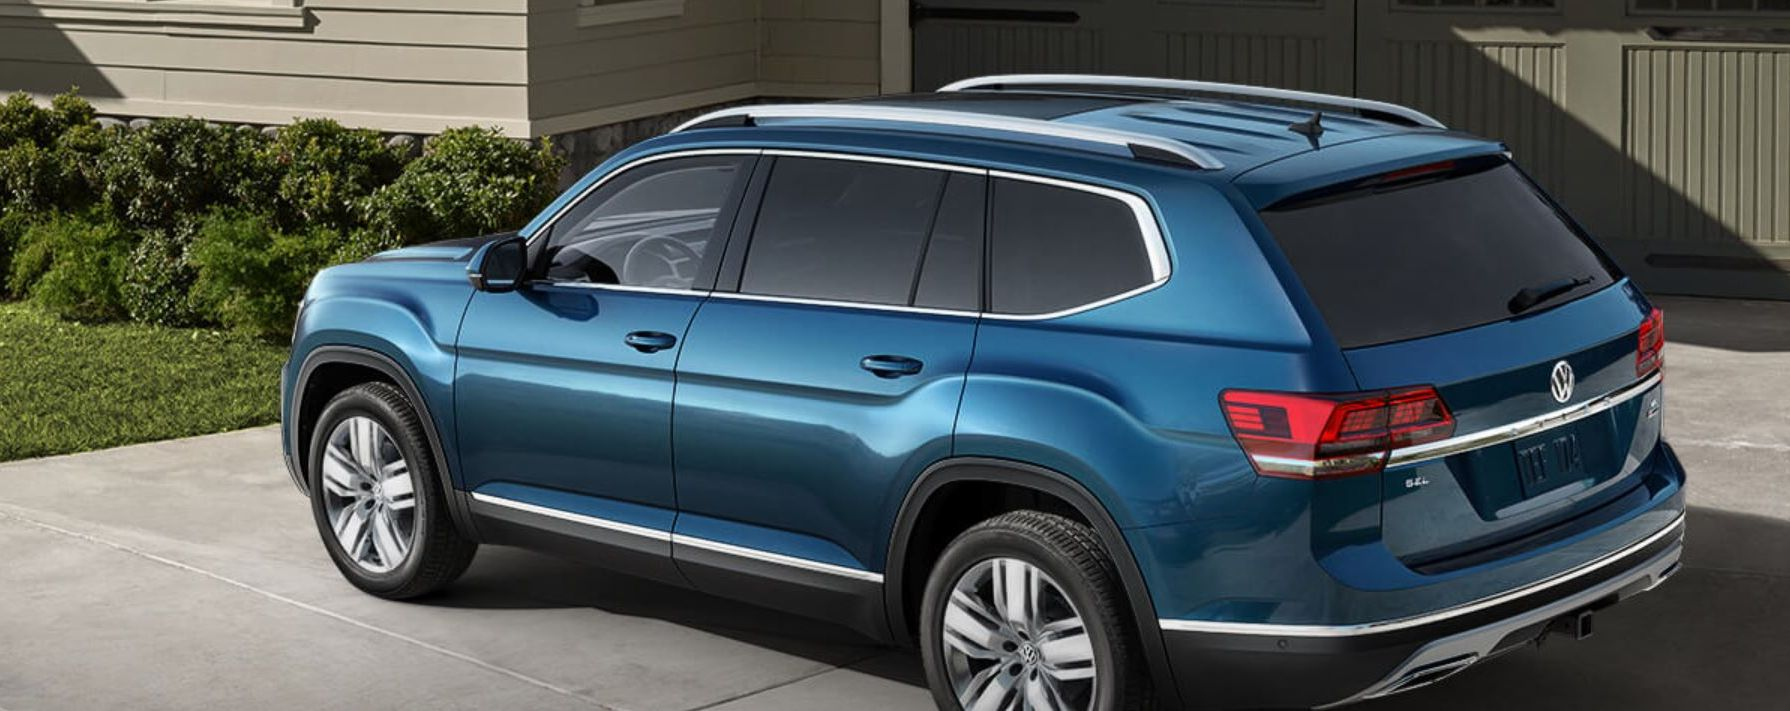 2019 Volkswagen Atlas for Sale near Cape May Court House, NJ